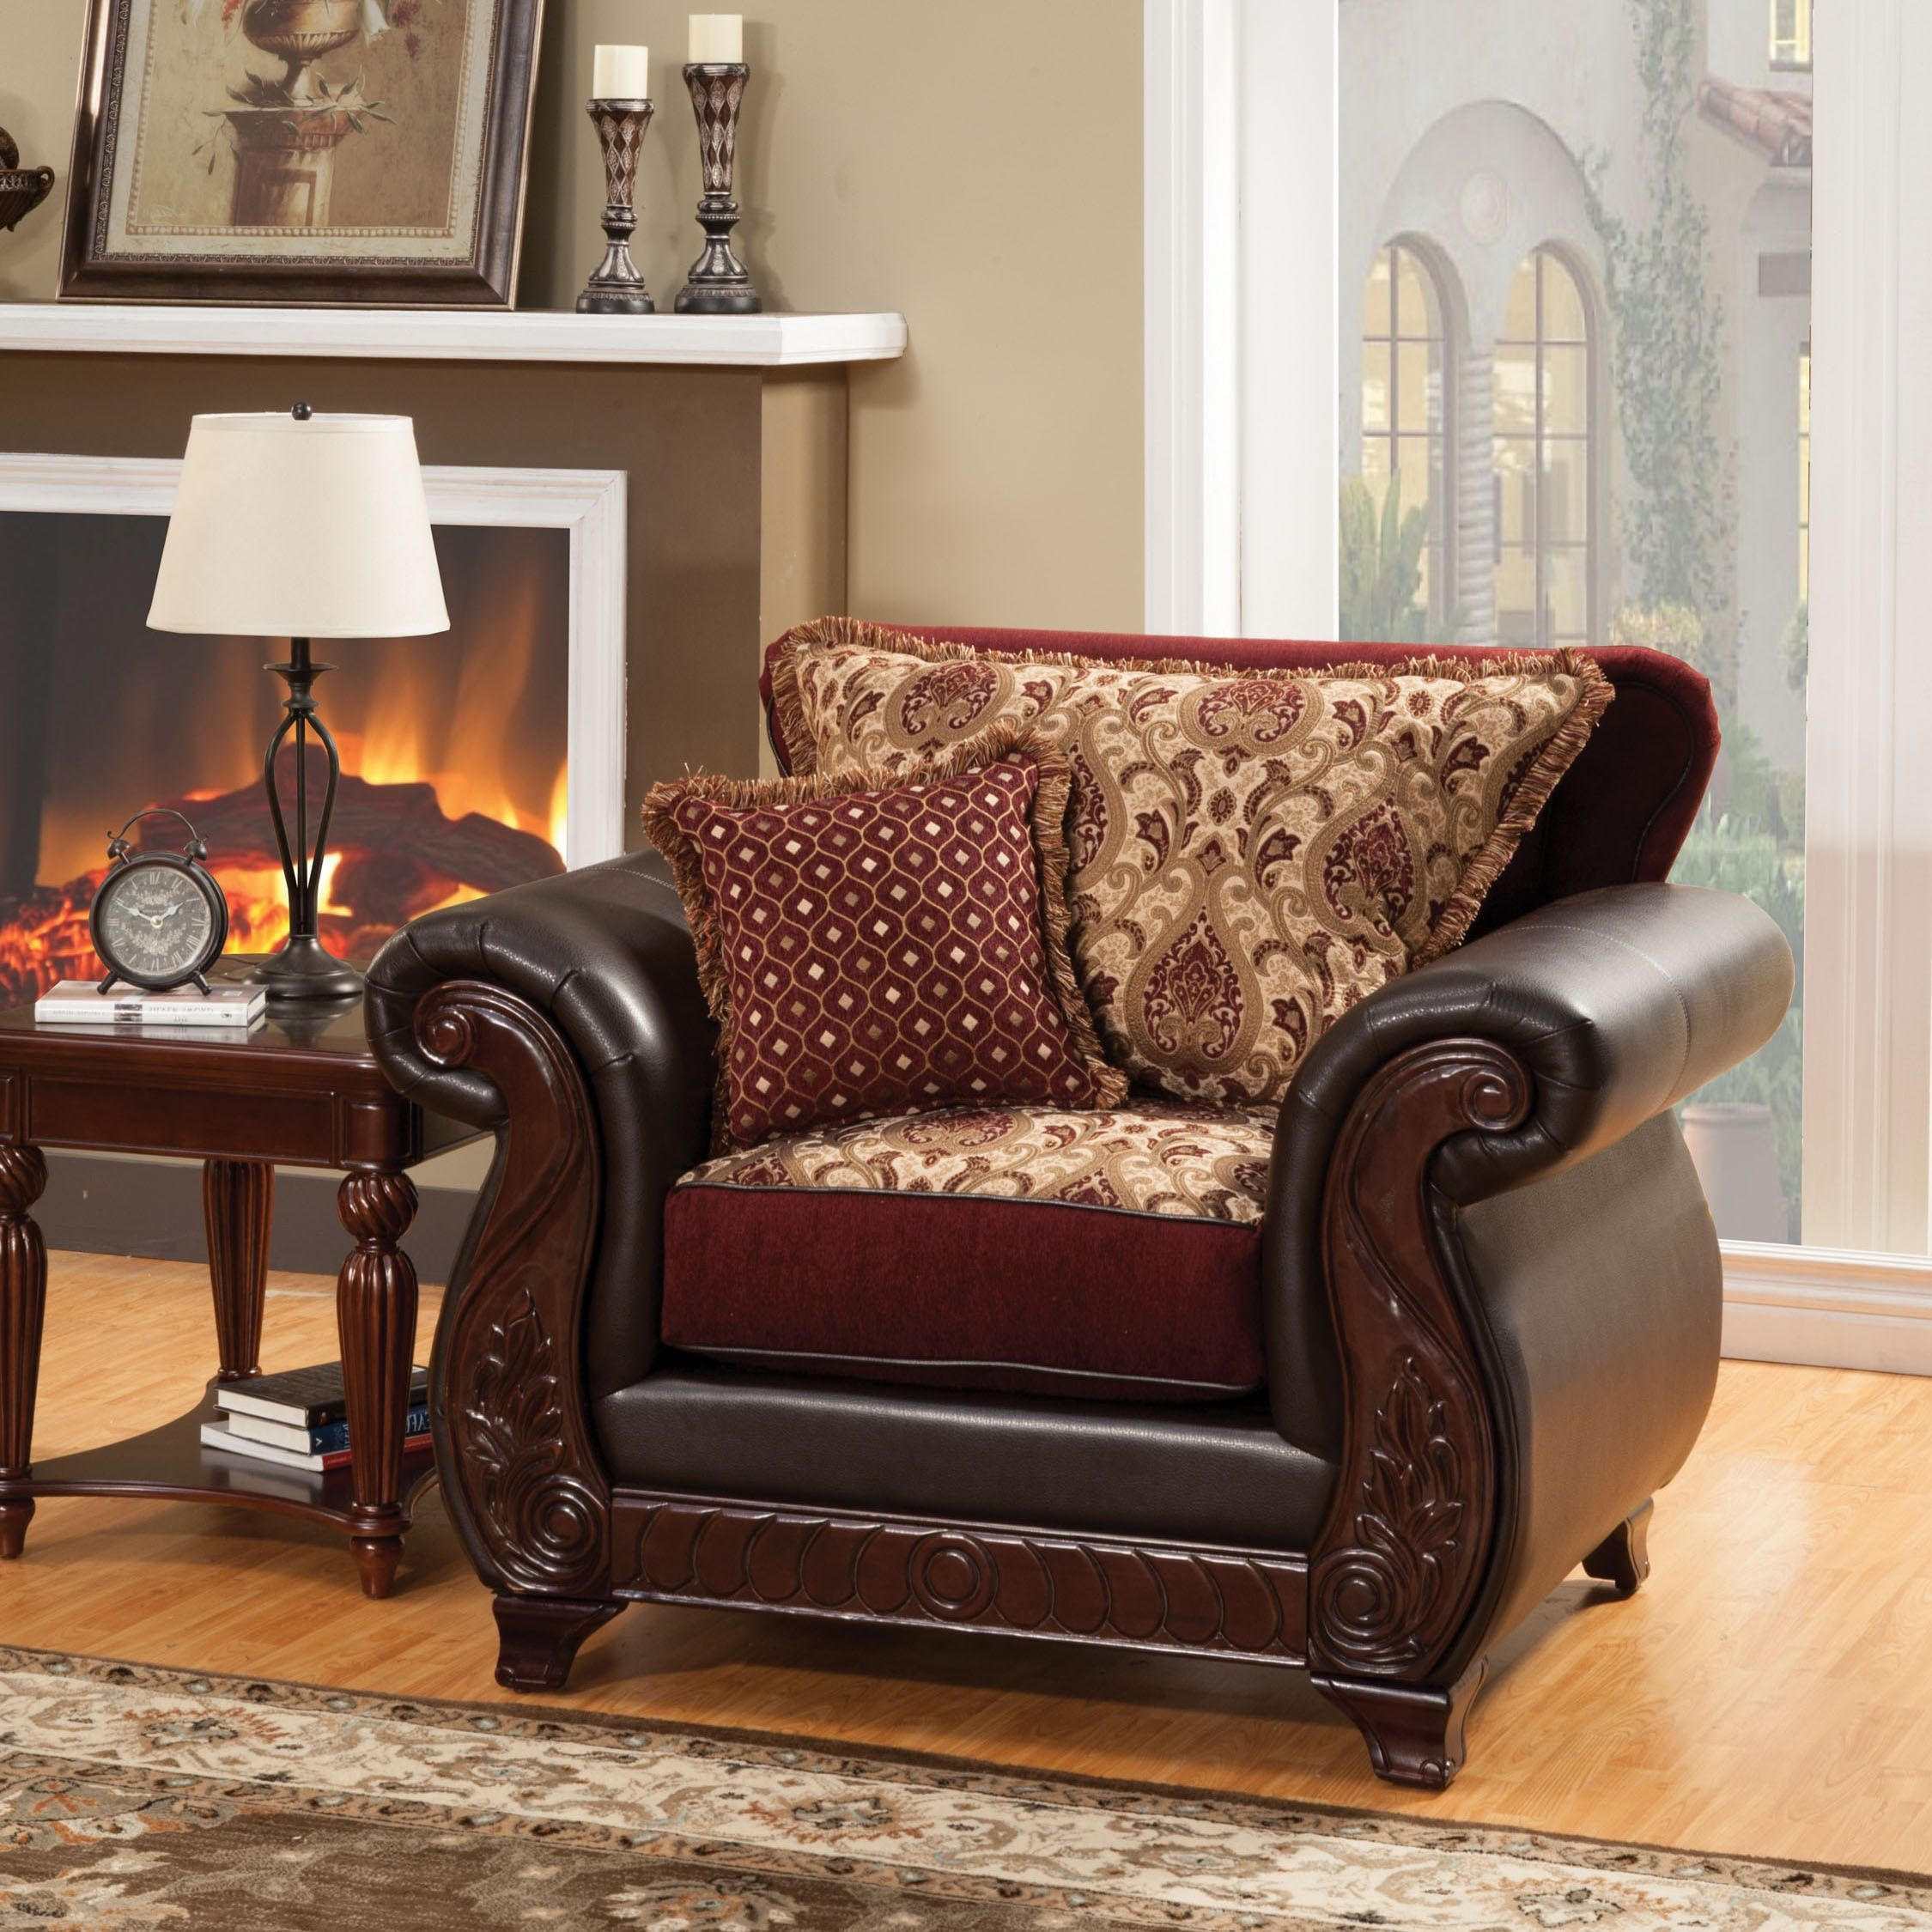 Small Living Room Ideas For More Seating And Style: Furniture Of America Corz Traditional Faux Leather Padded